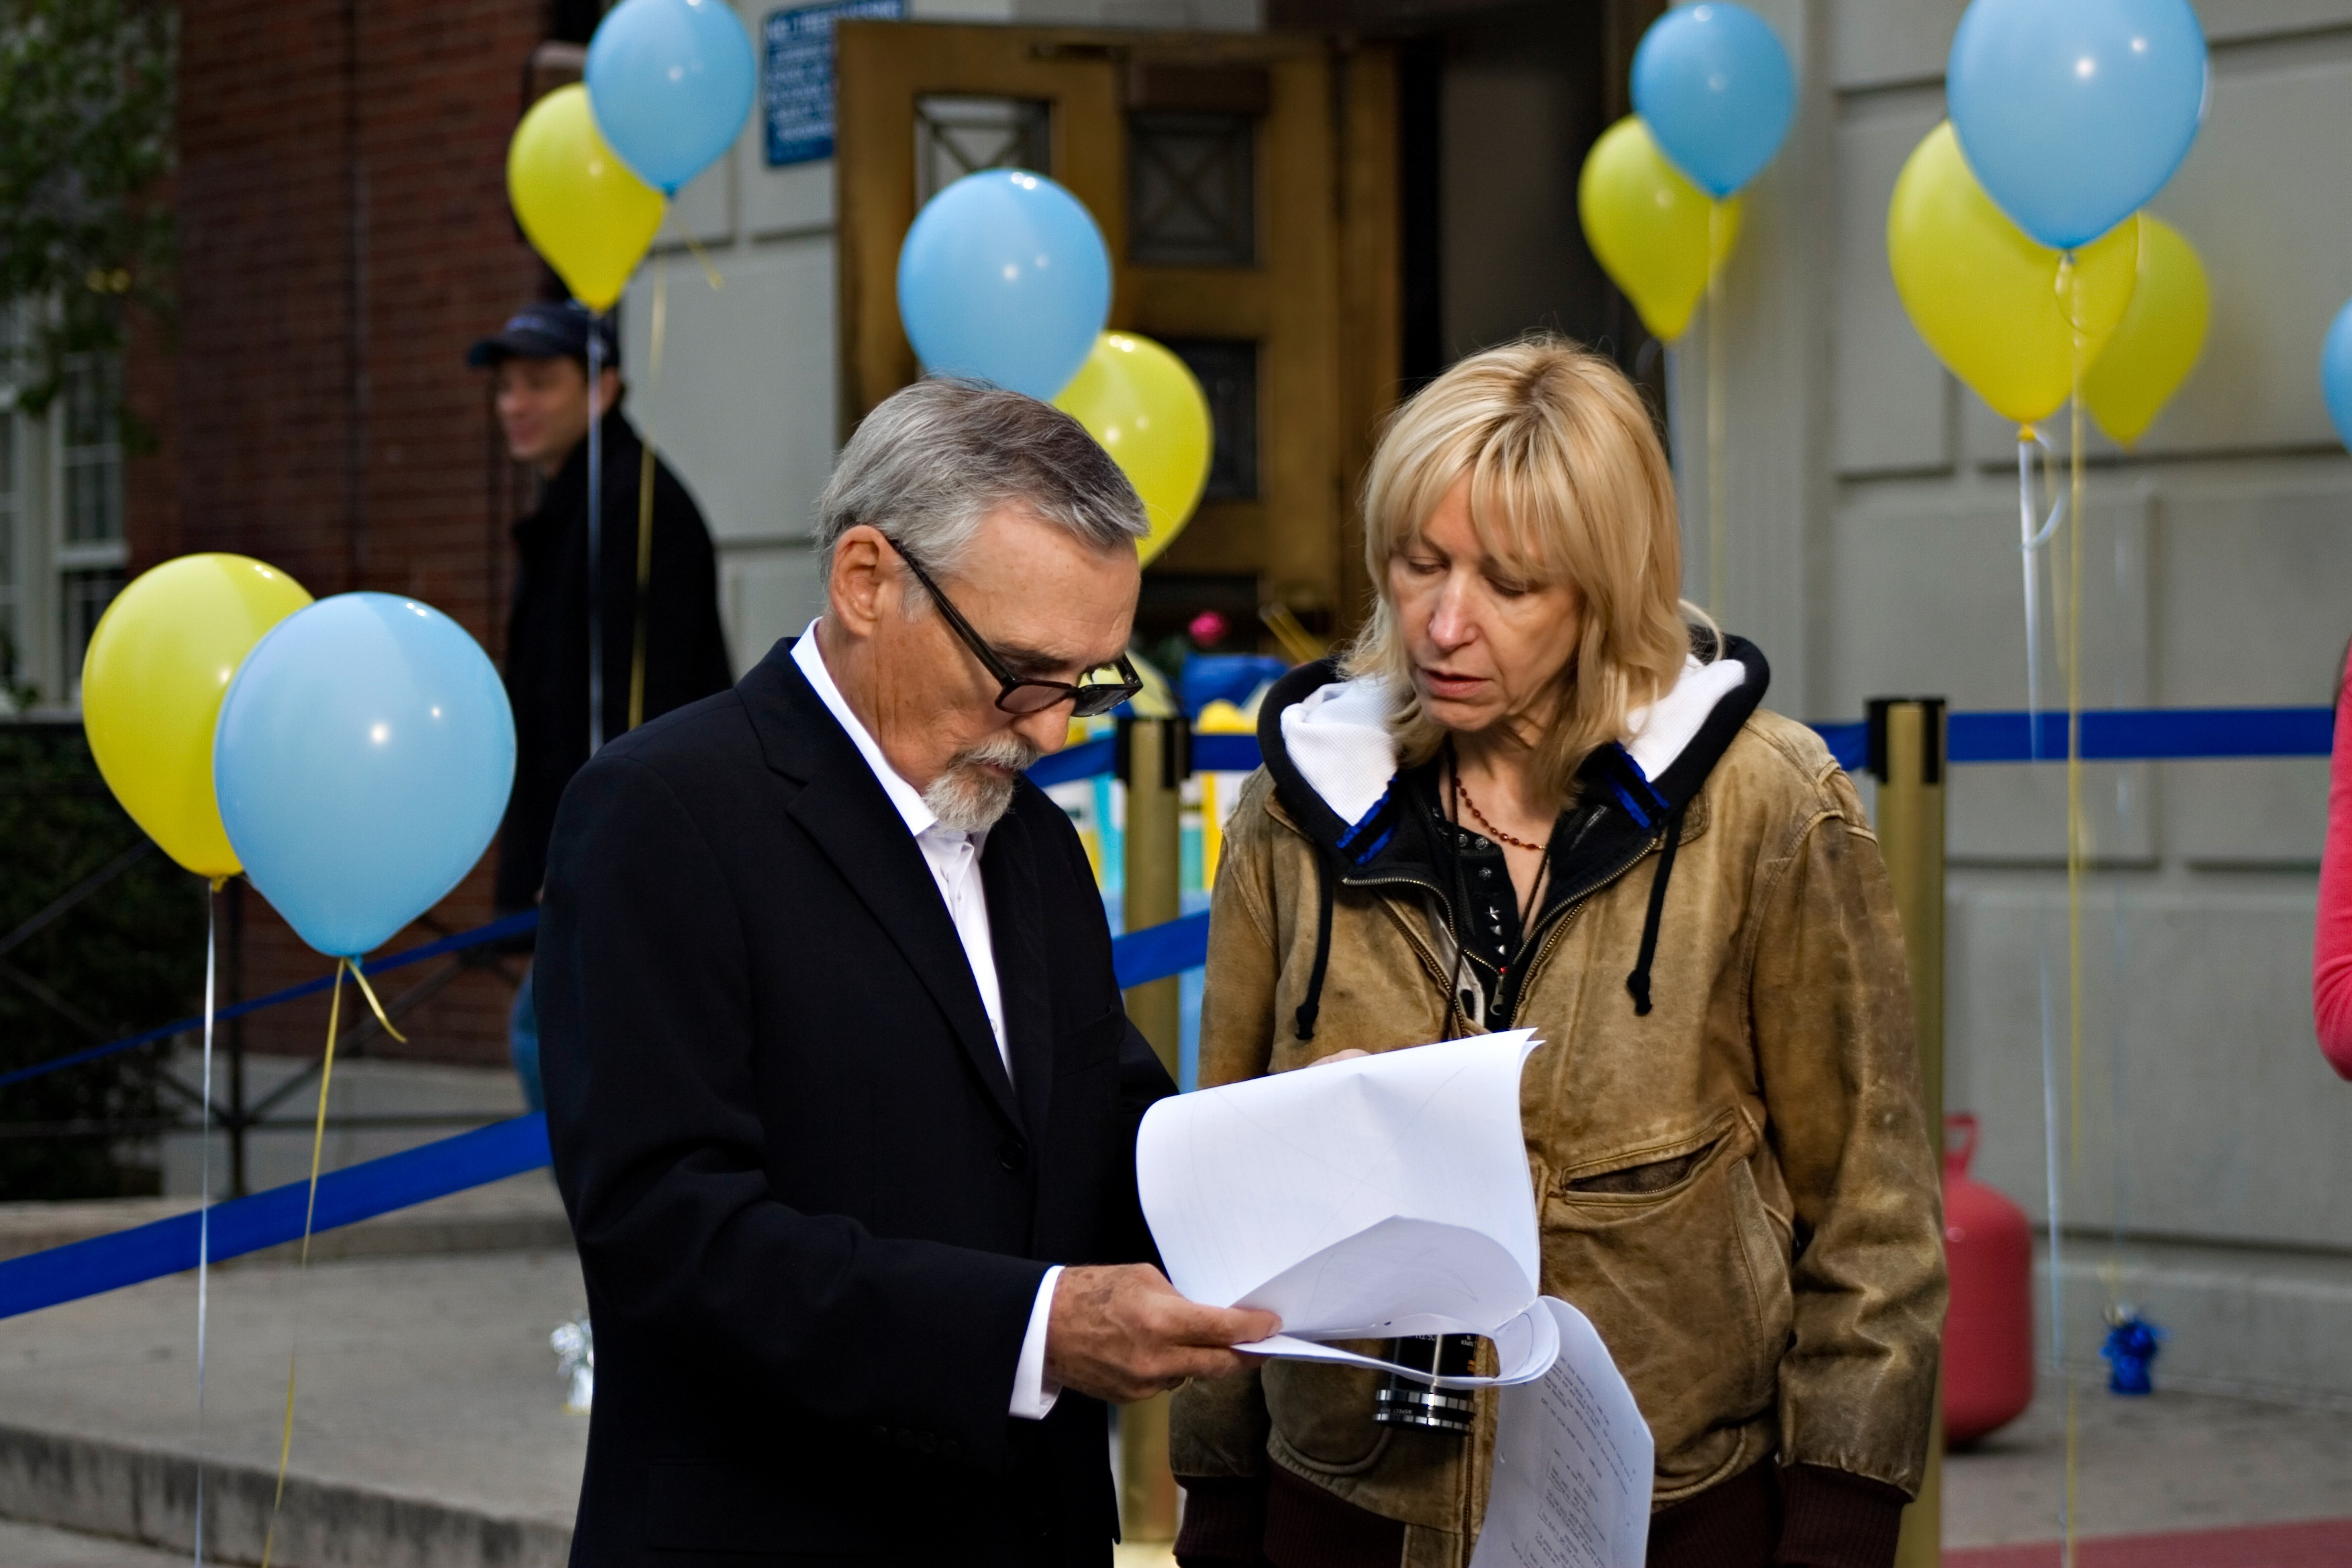 With Dennis Hopper on the set of The Last Film Festival.